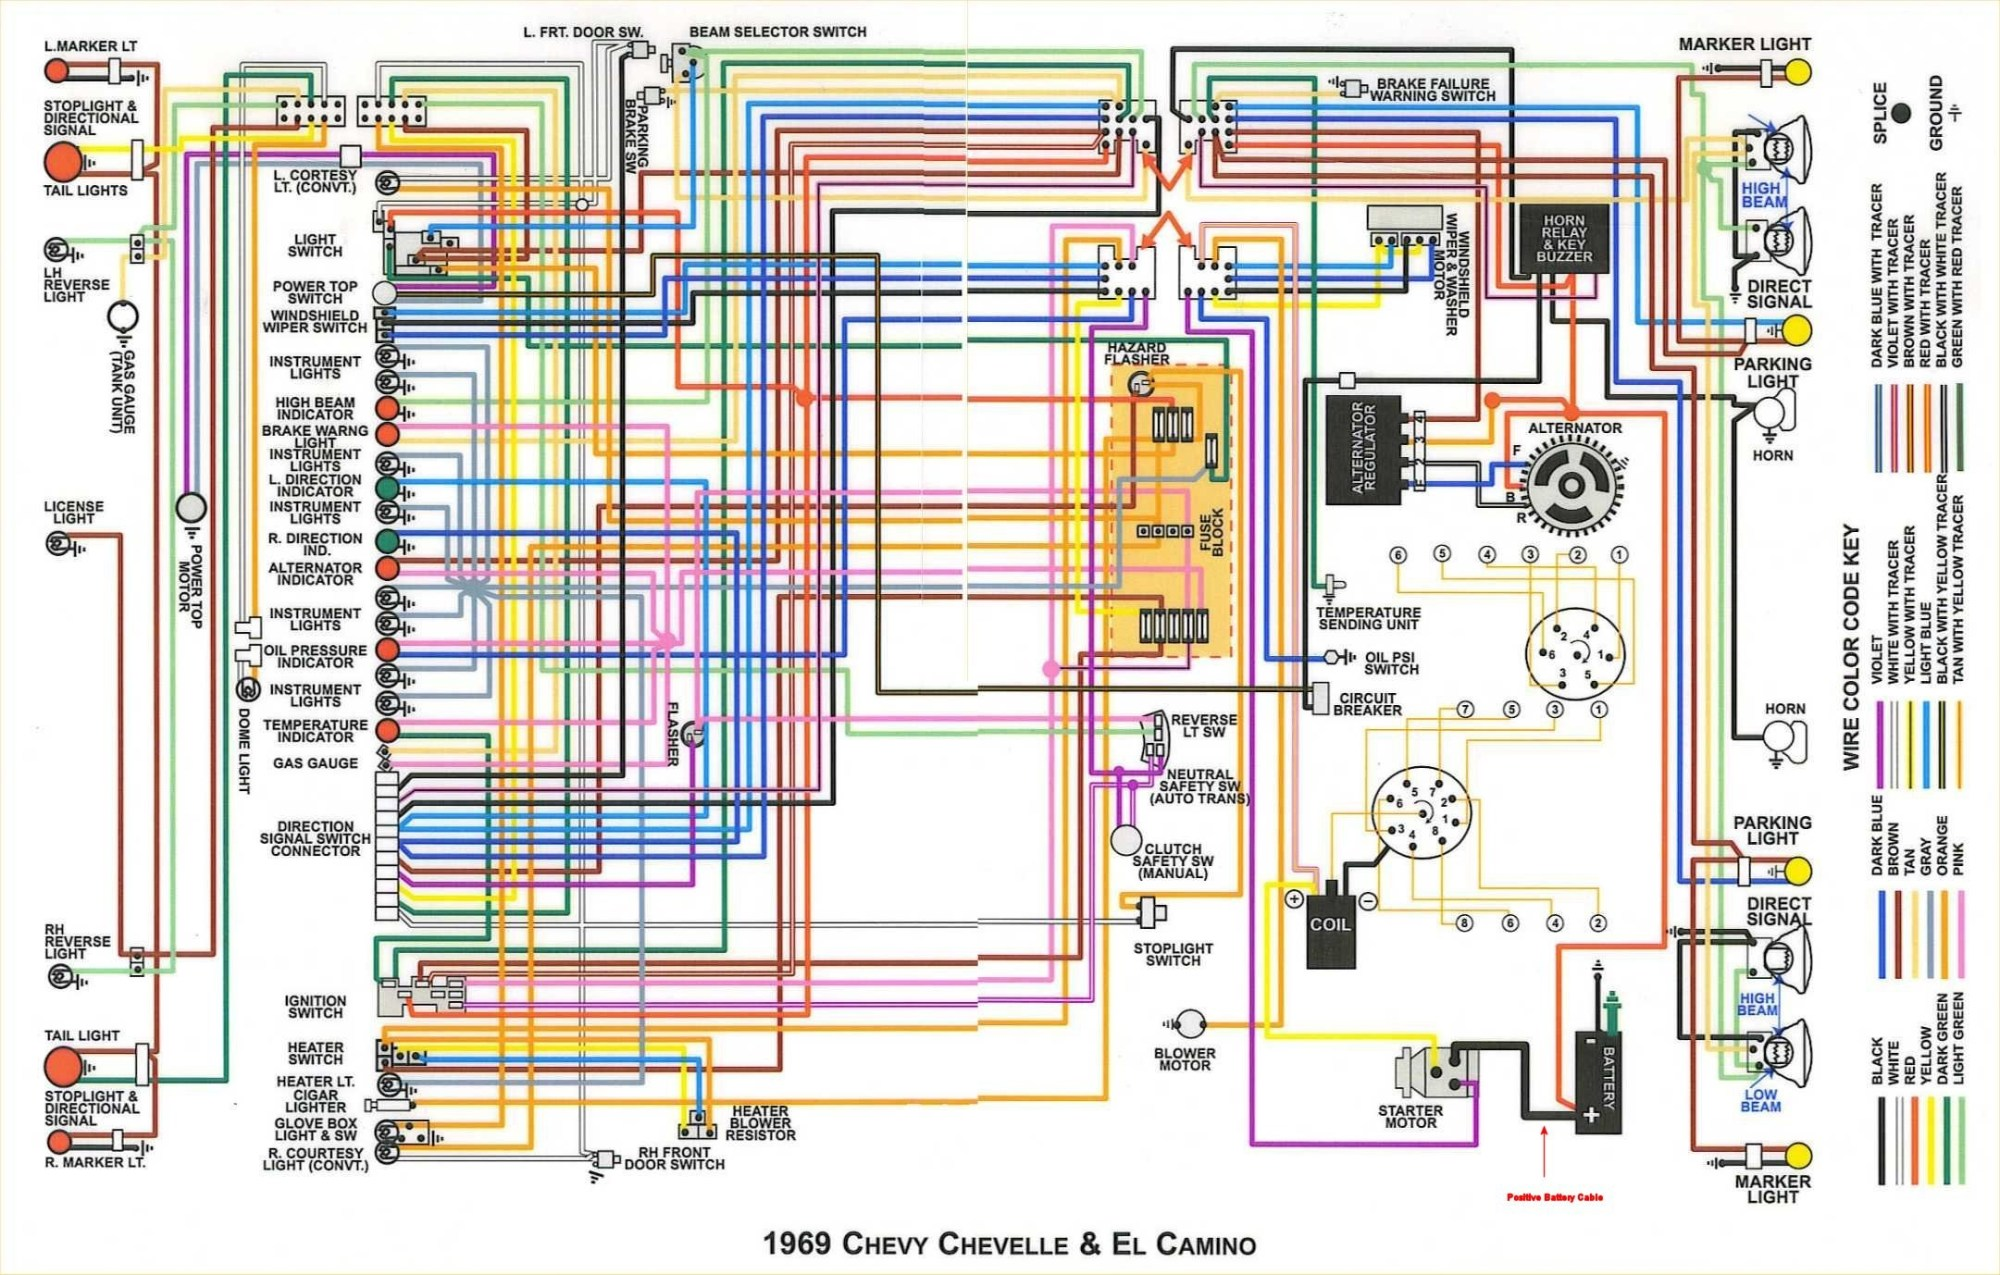 hight resolution of dash wiring diagram 1968 data schematics wiring diagram u2022 rh xrkarting com 97 cougar wiring diagram